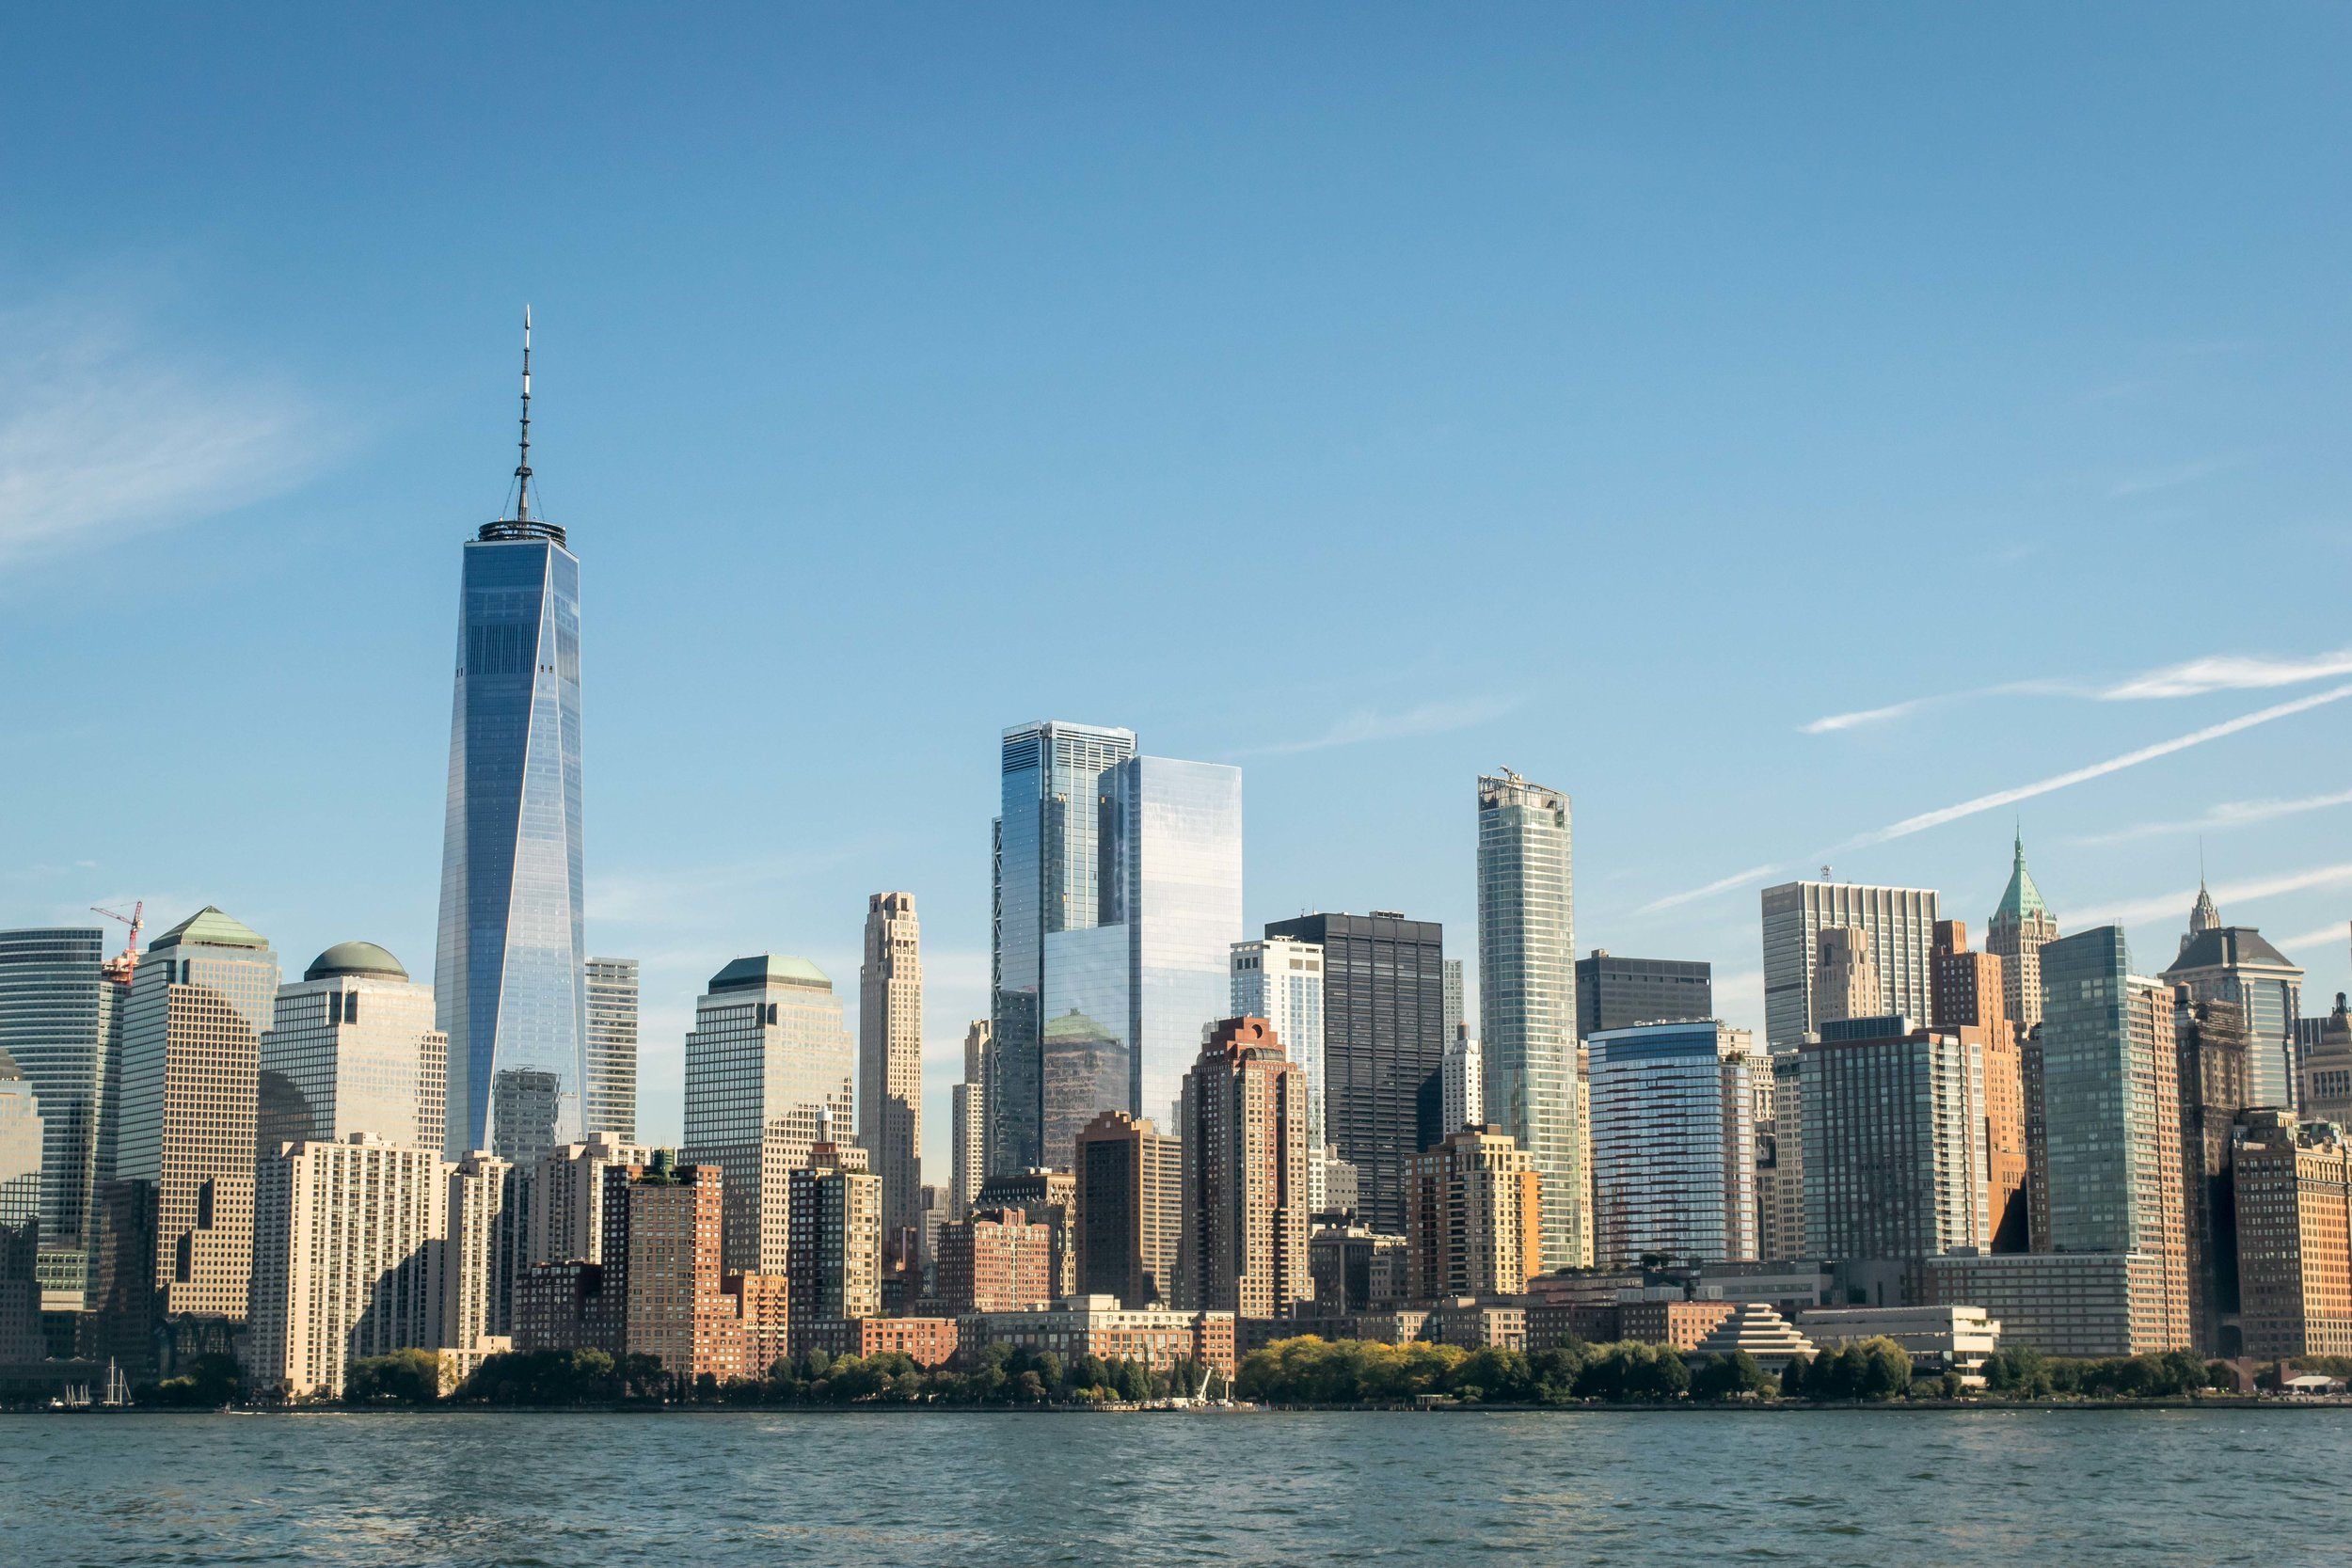 View of Lower Manhattan Skyline including One World Trade Center